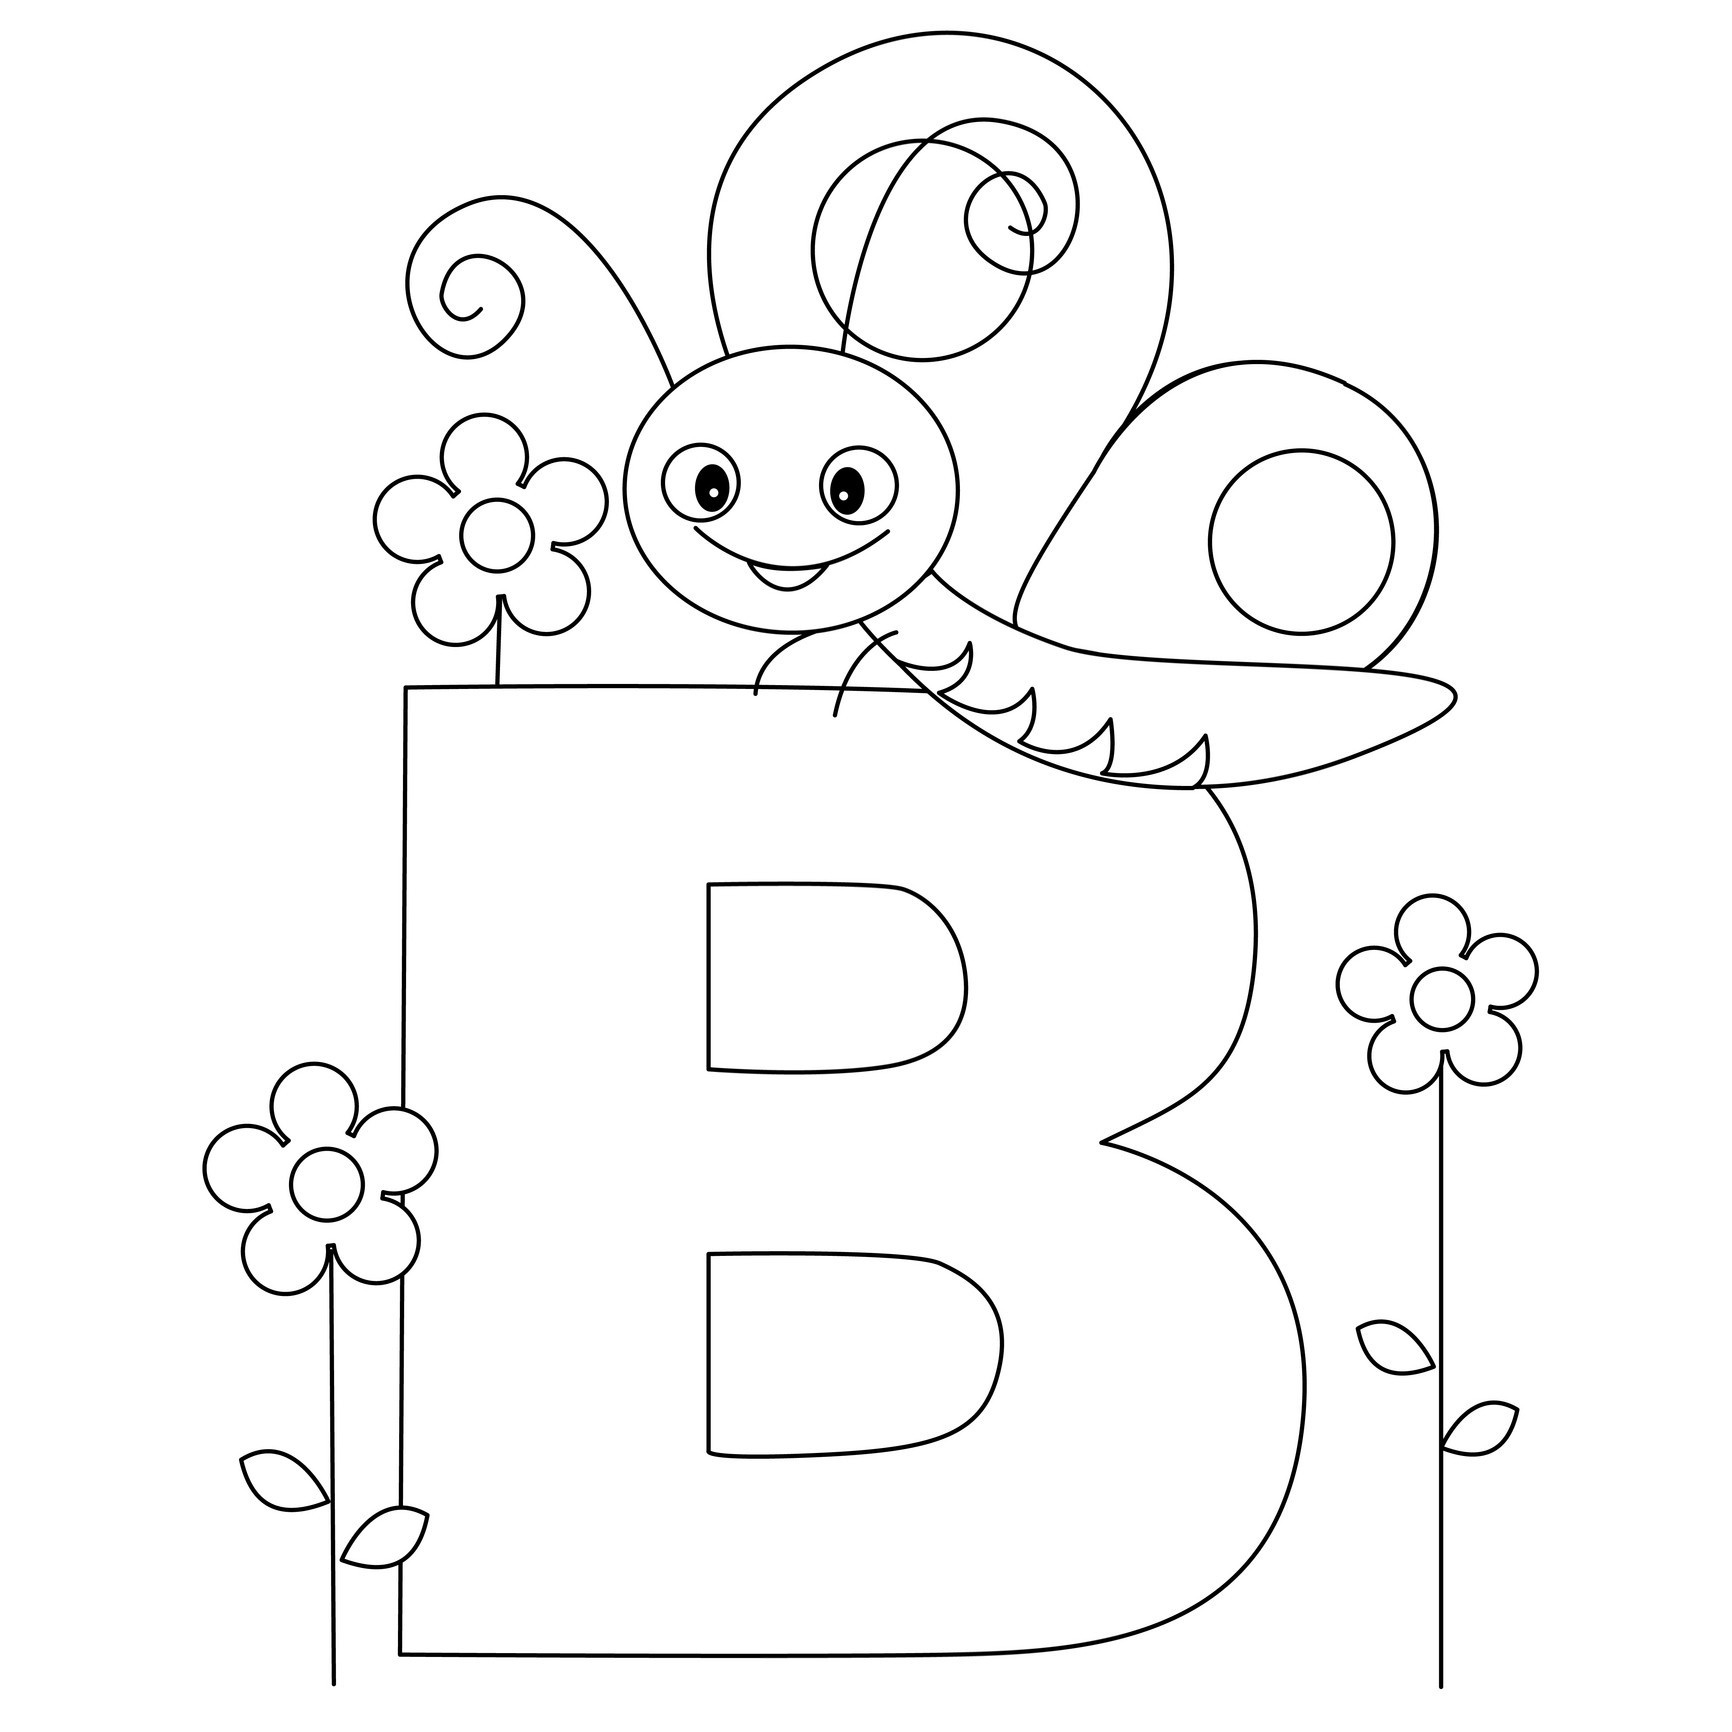 Free Printable Alphabet Coloring Pages For Kids - Best Coloring - Free Printable Alphabet Letters To Color